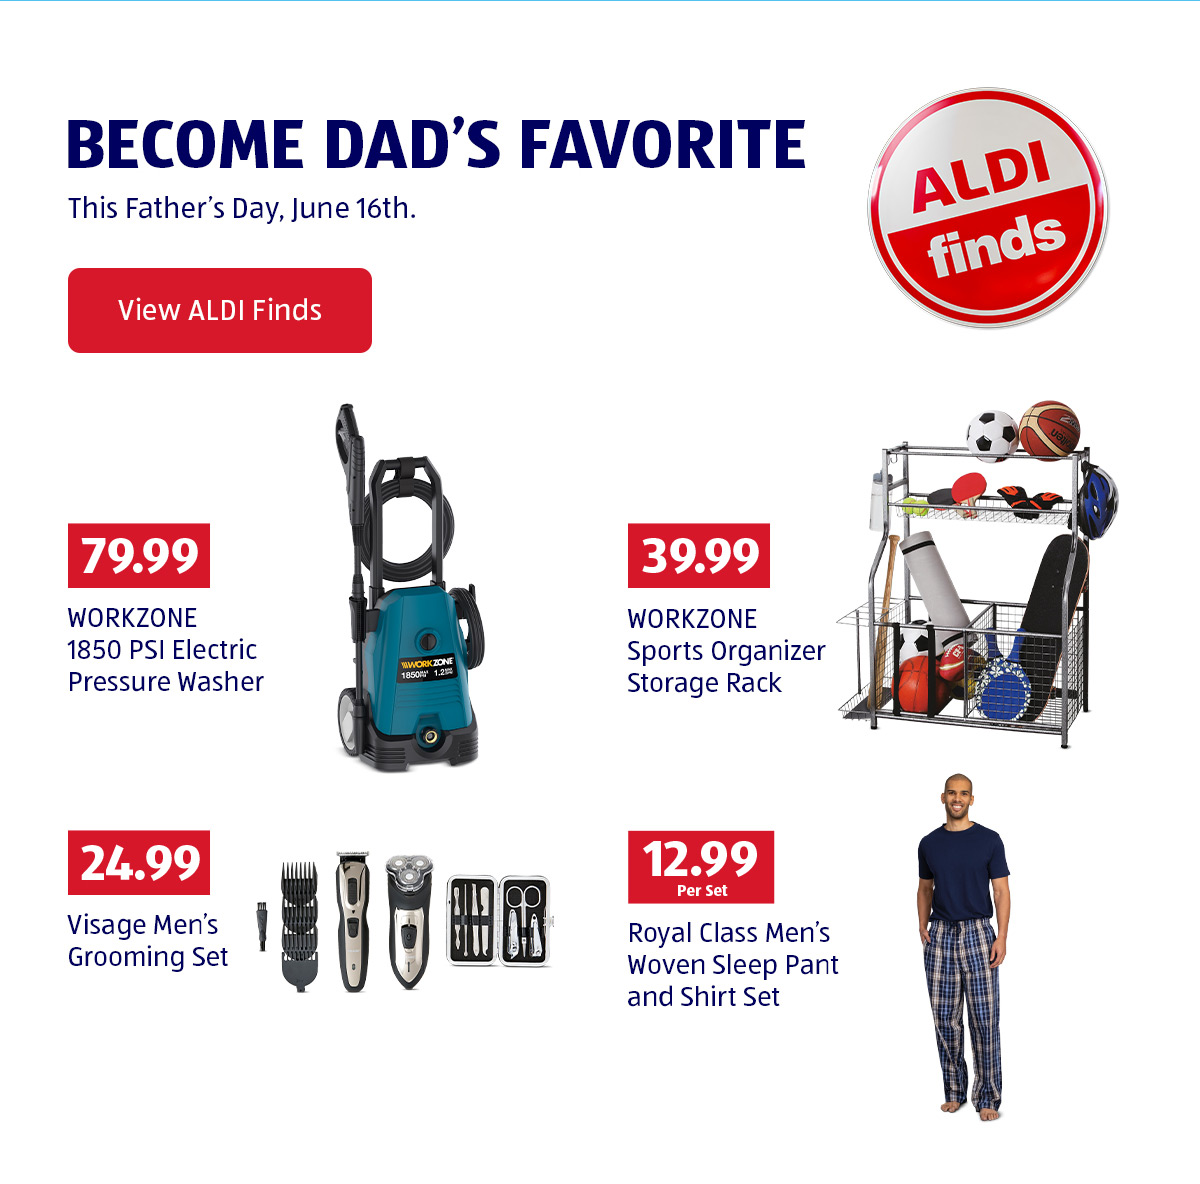 Become Dad's Favorite. This Father's Day, June 16th. View ALDI Finds.